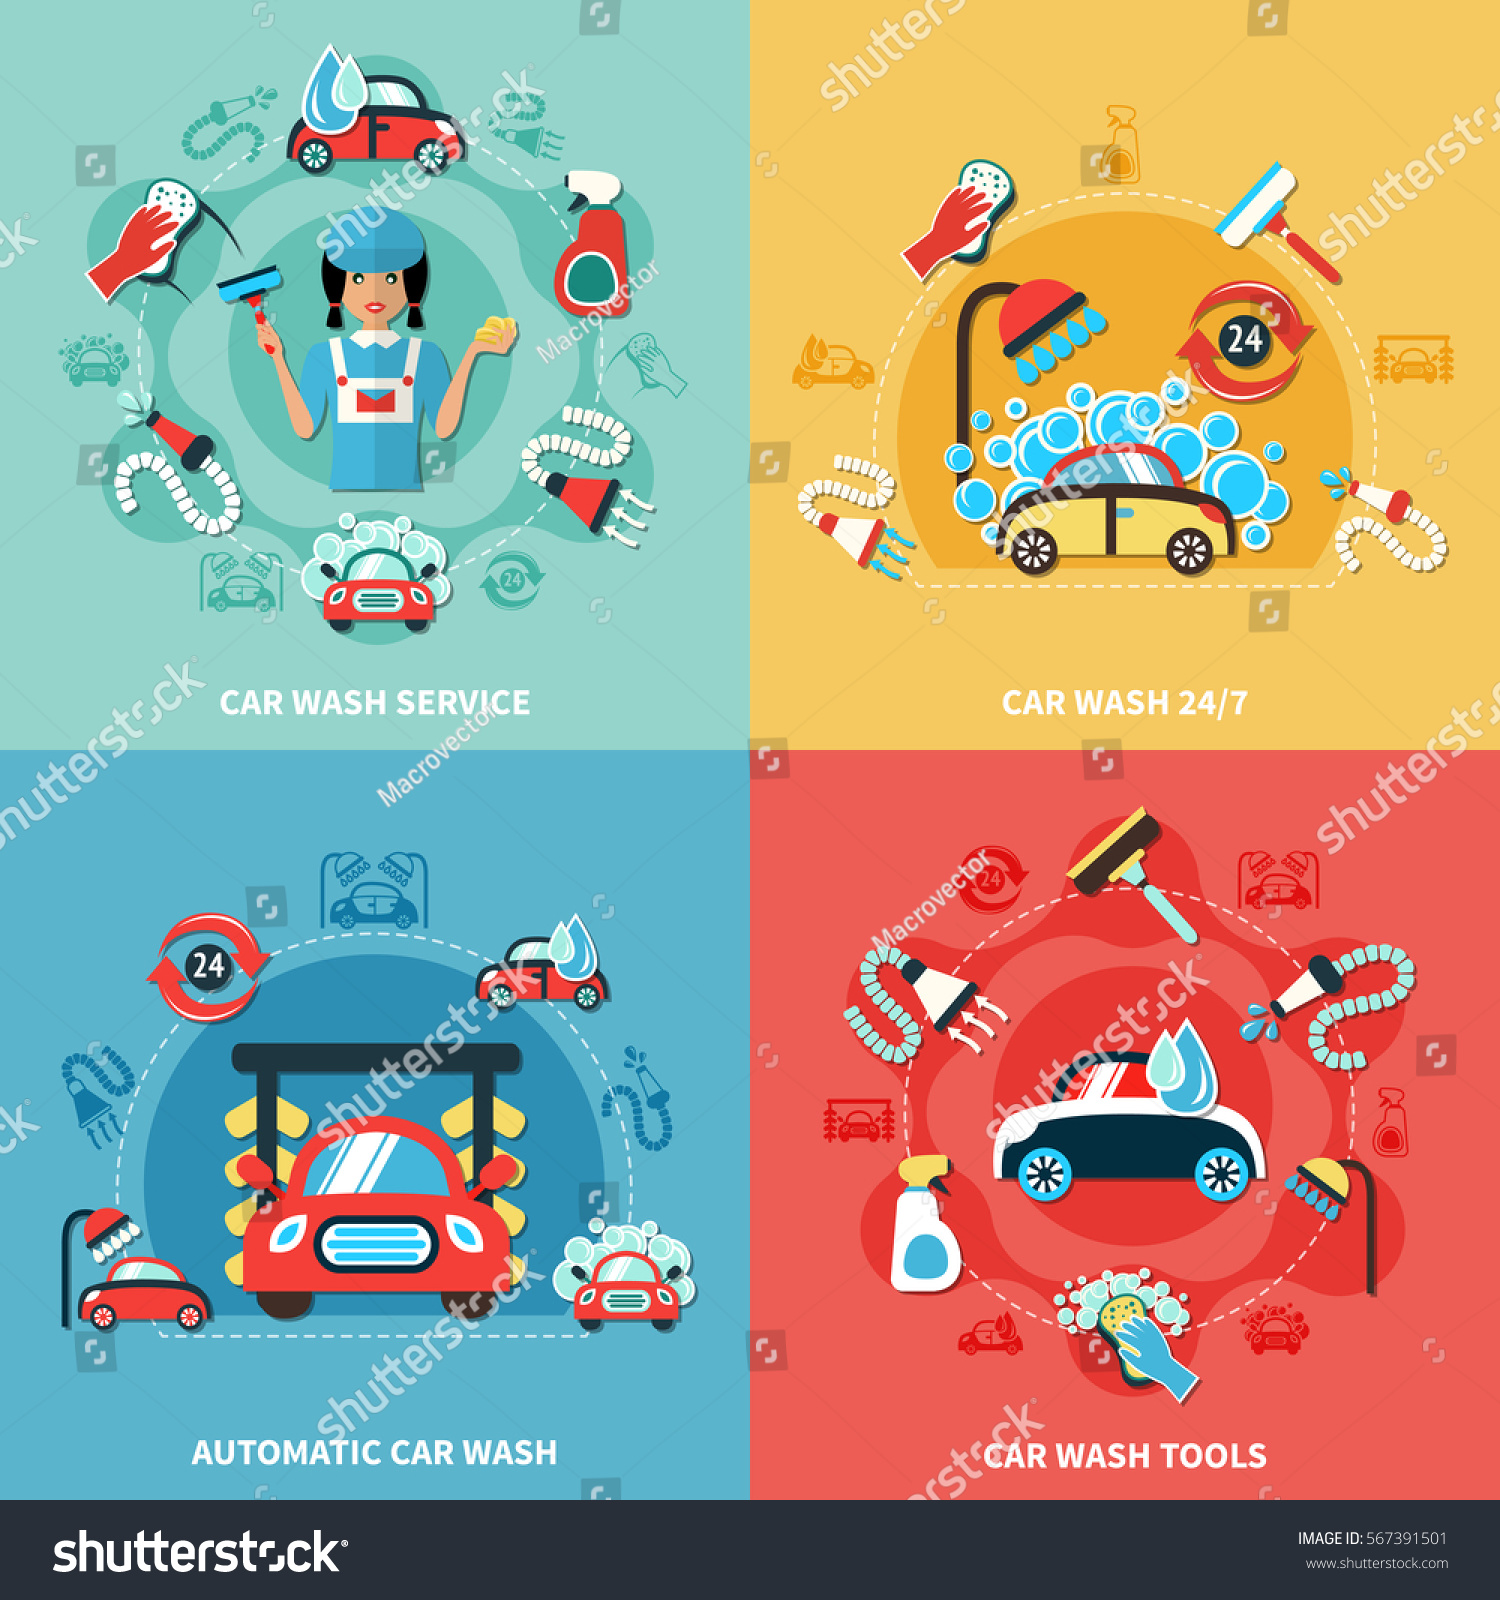 four square car wash 247 colorful compositions with cartoon cars cleaning agents and tools